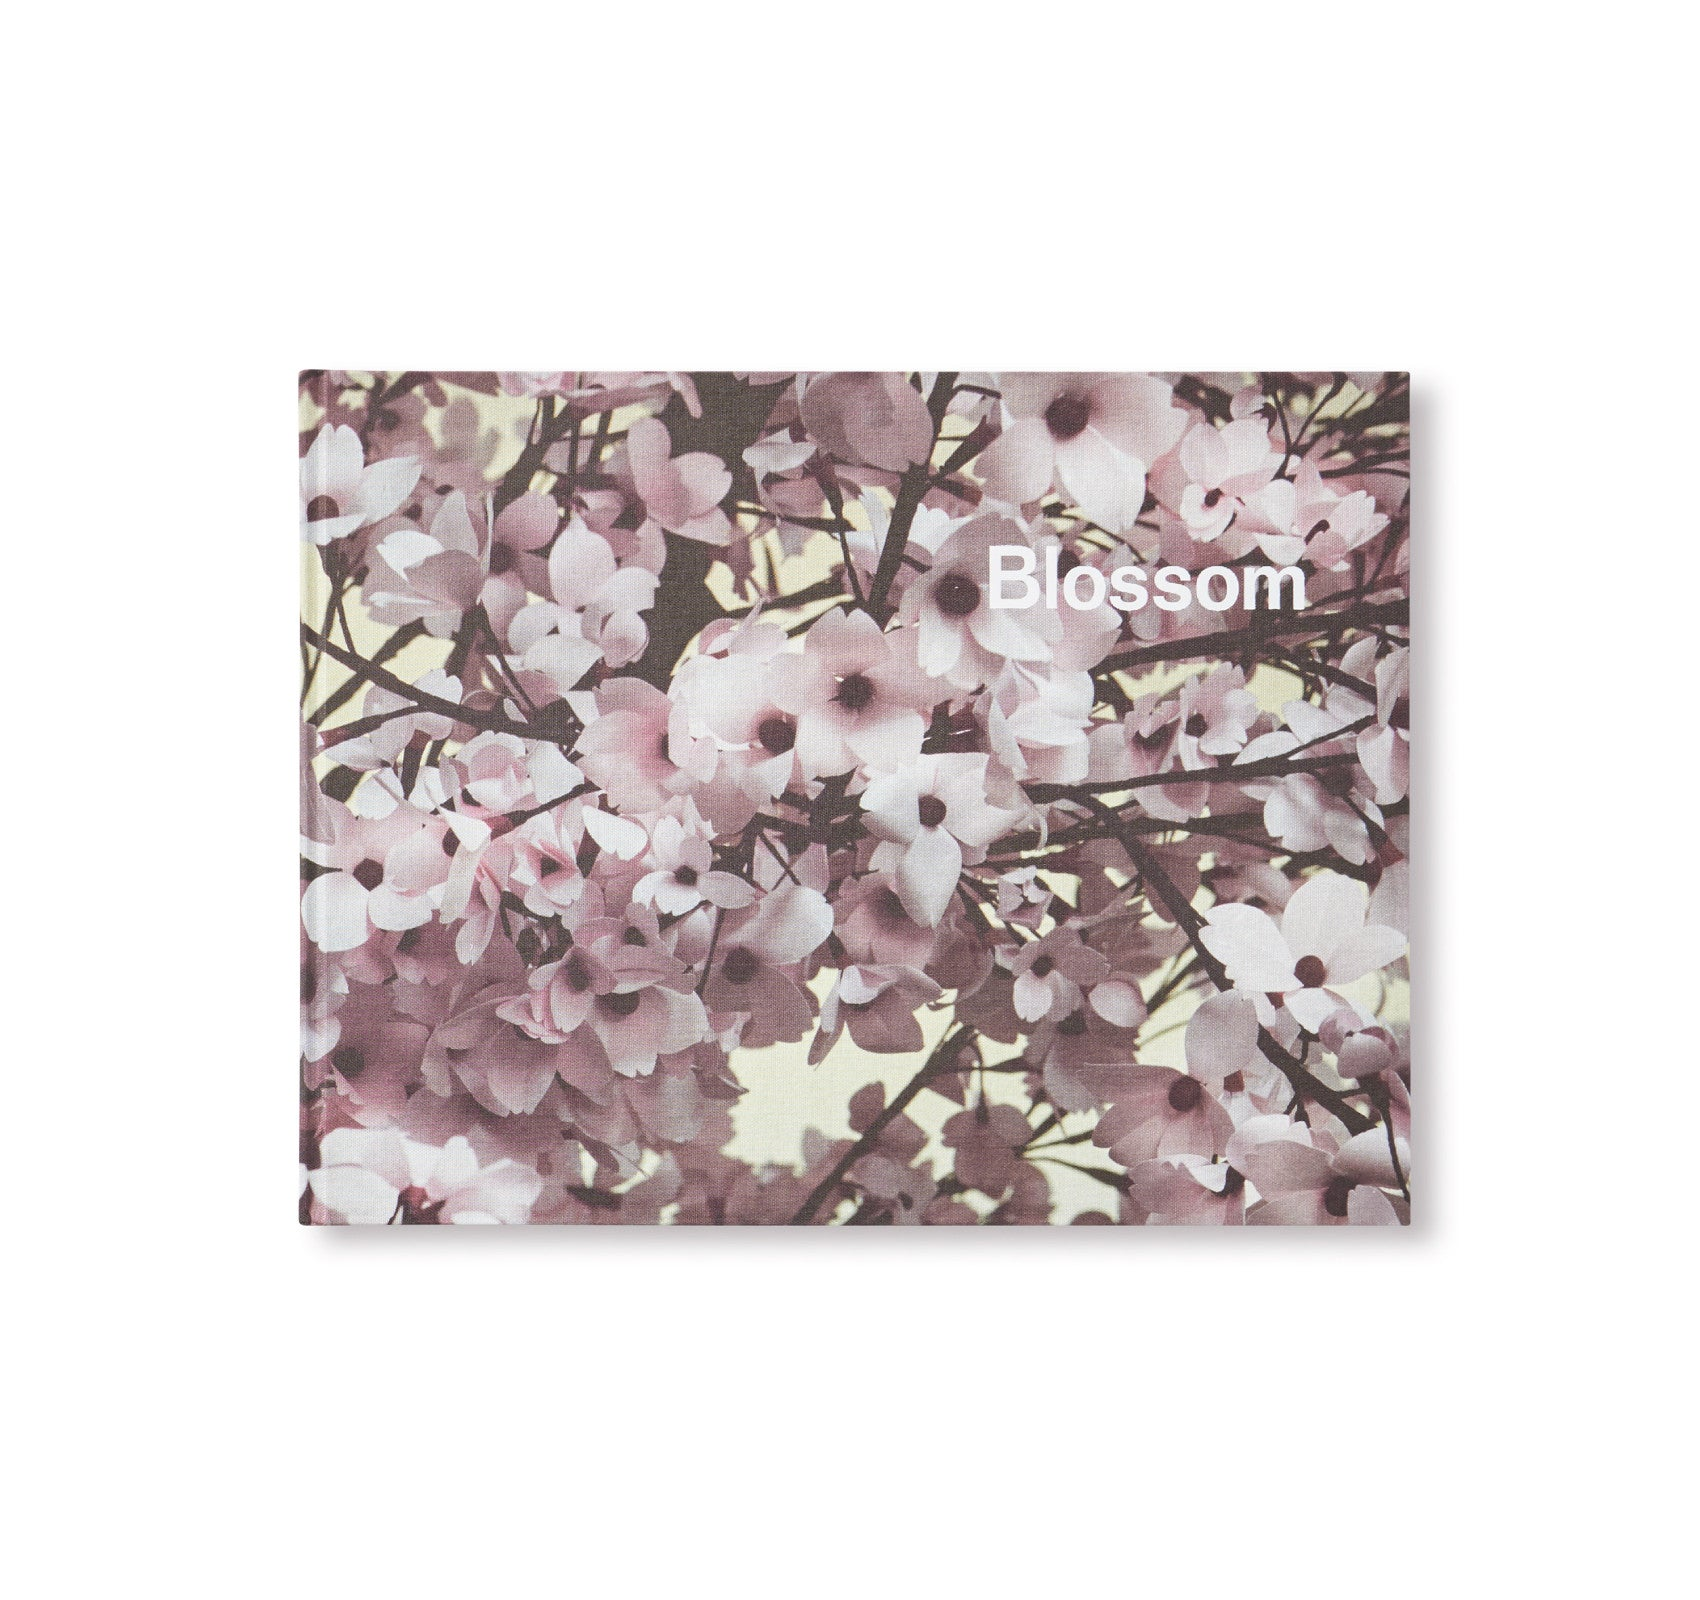 BLOSSOM by Thomas Demand & Ben Lerner